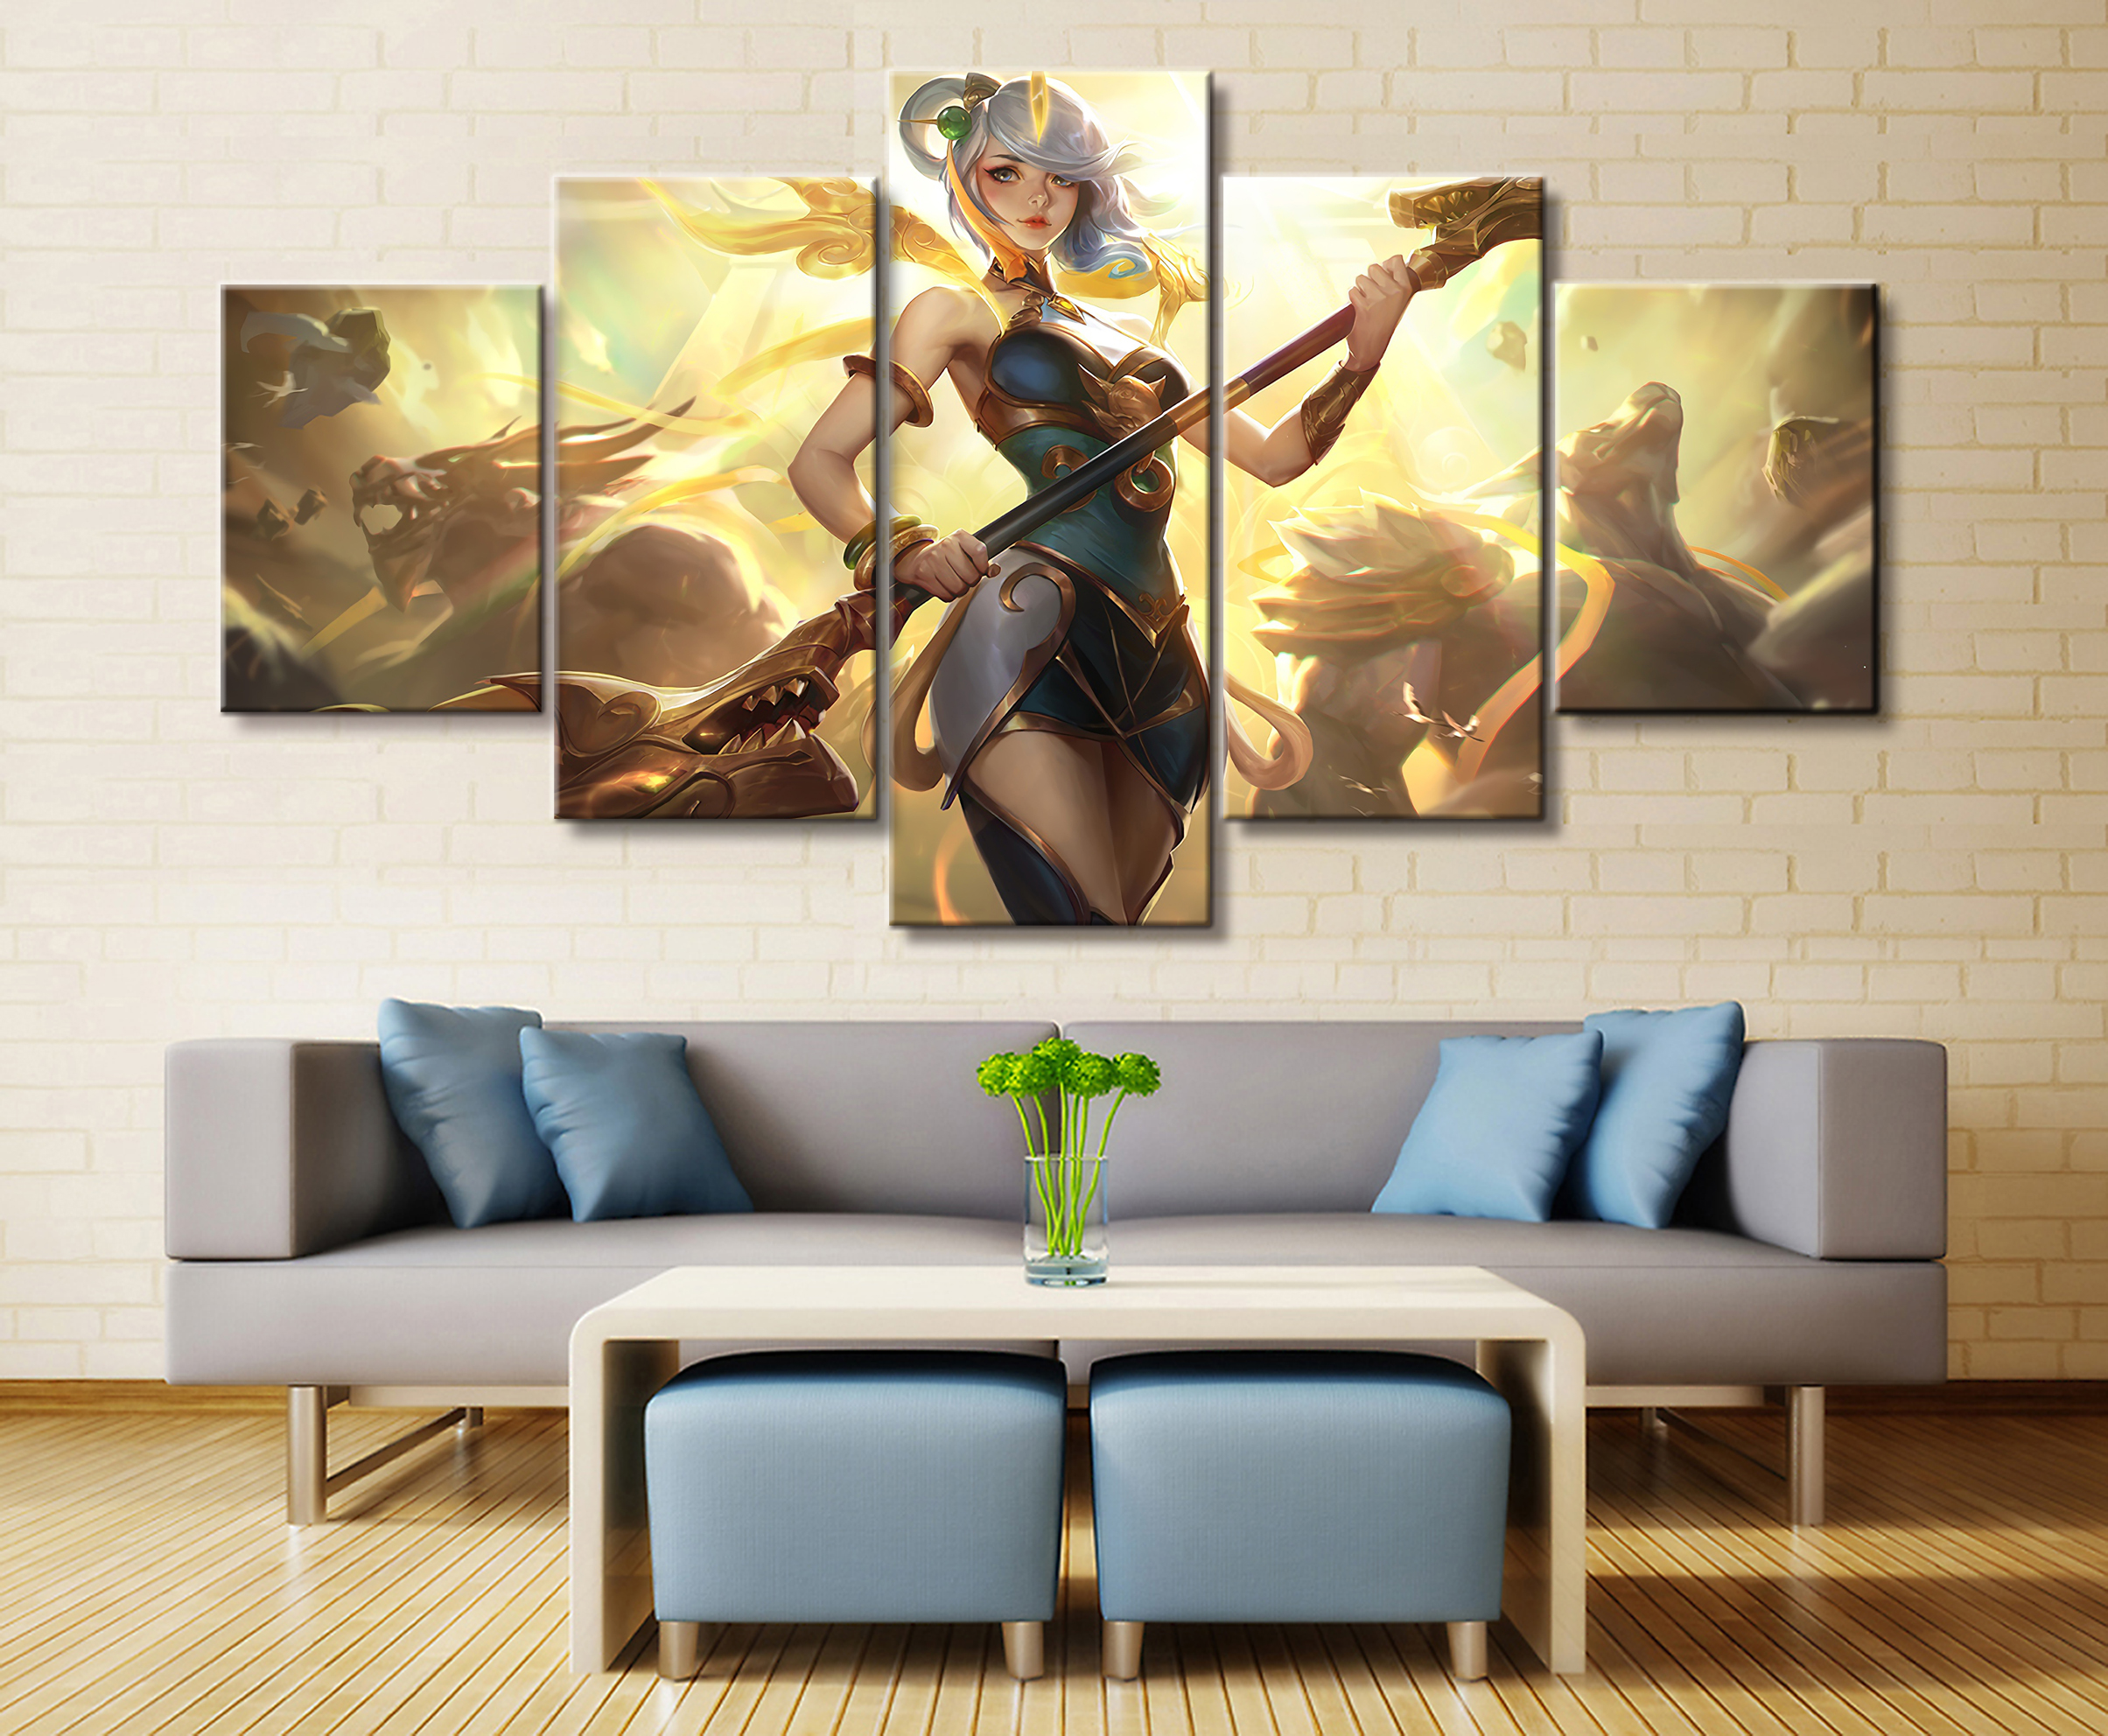 5 Panel Lol League Of Legends Orianna/kha'zix Game - Wall Art Game Of Thrones , HD Wallpaper & Backgrounds